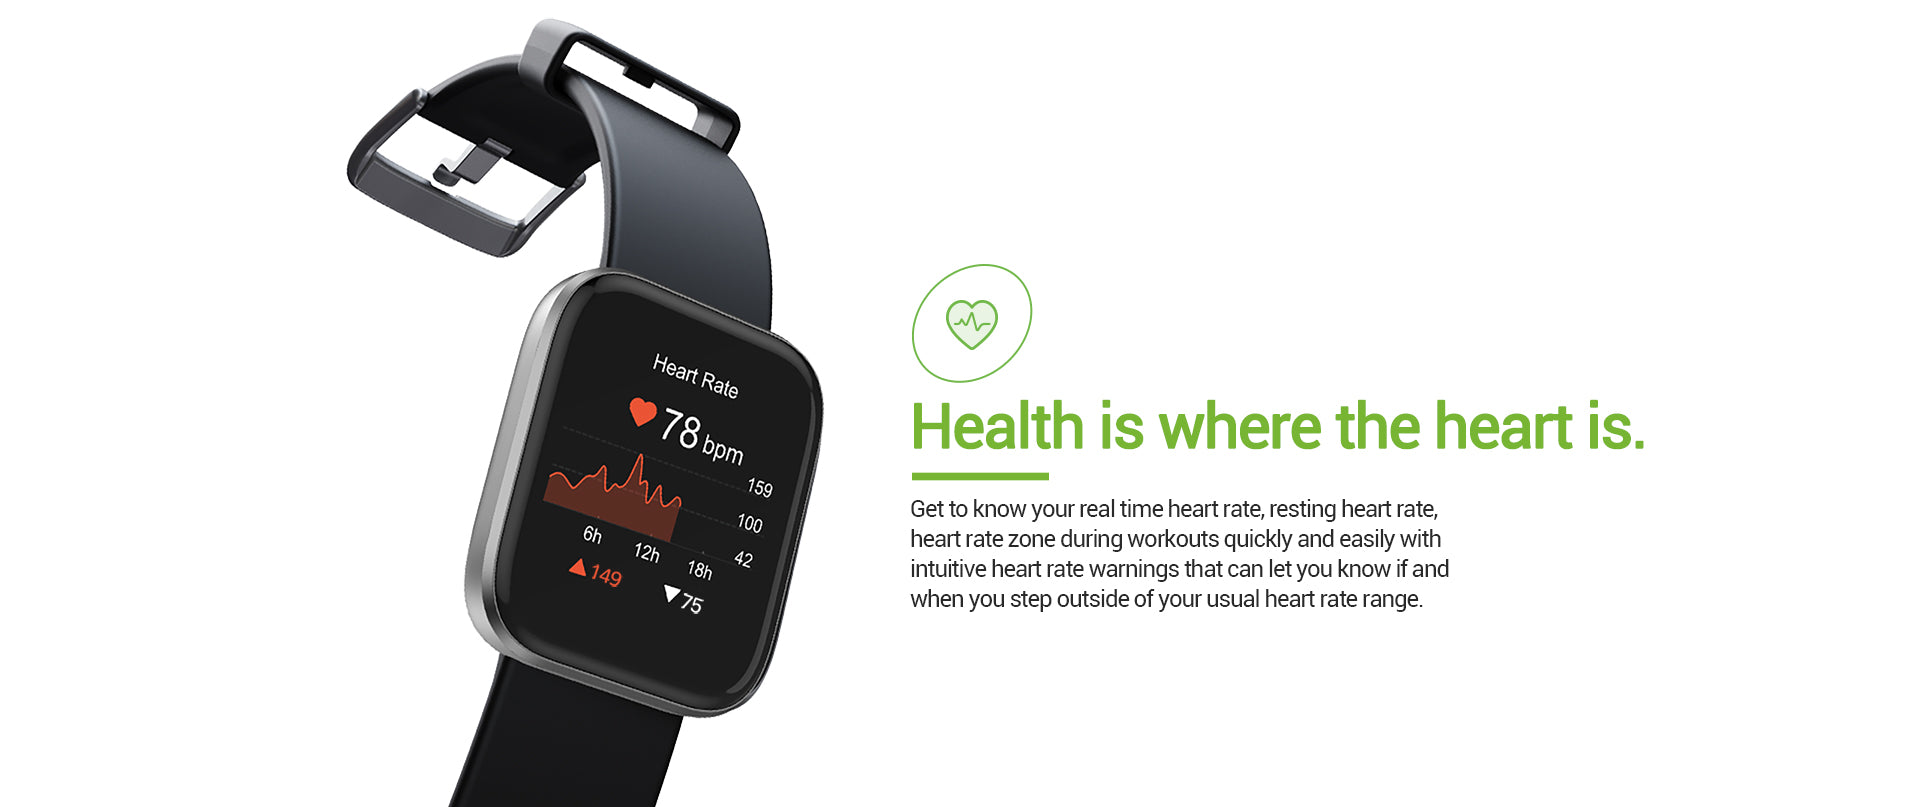 Get to know your real time heart rate, resting heart rateheart rate zone during workouts quickly and easily withintuitive heart rate warnings that can let you know if andwhen you step outside of your usual heart rate range.